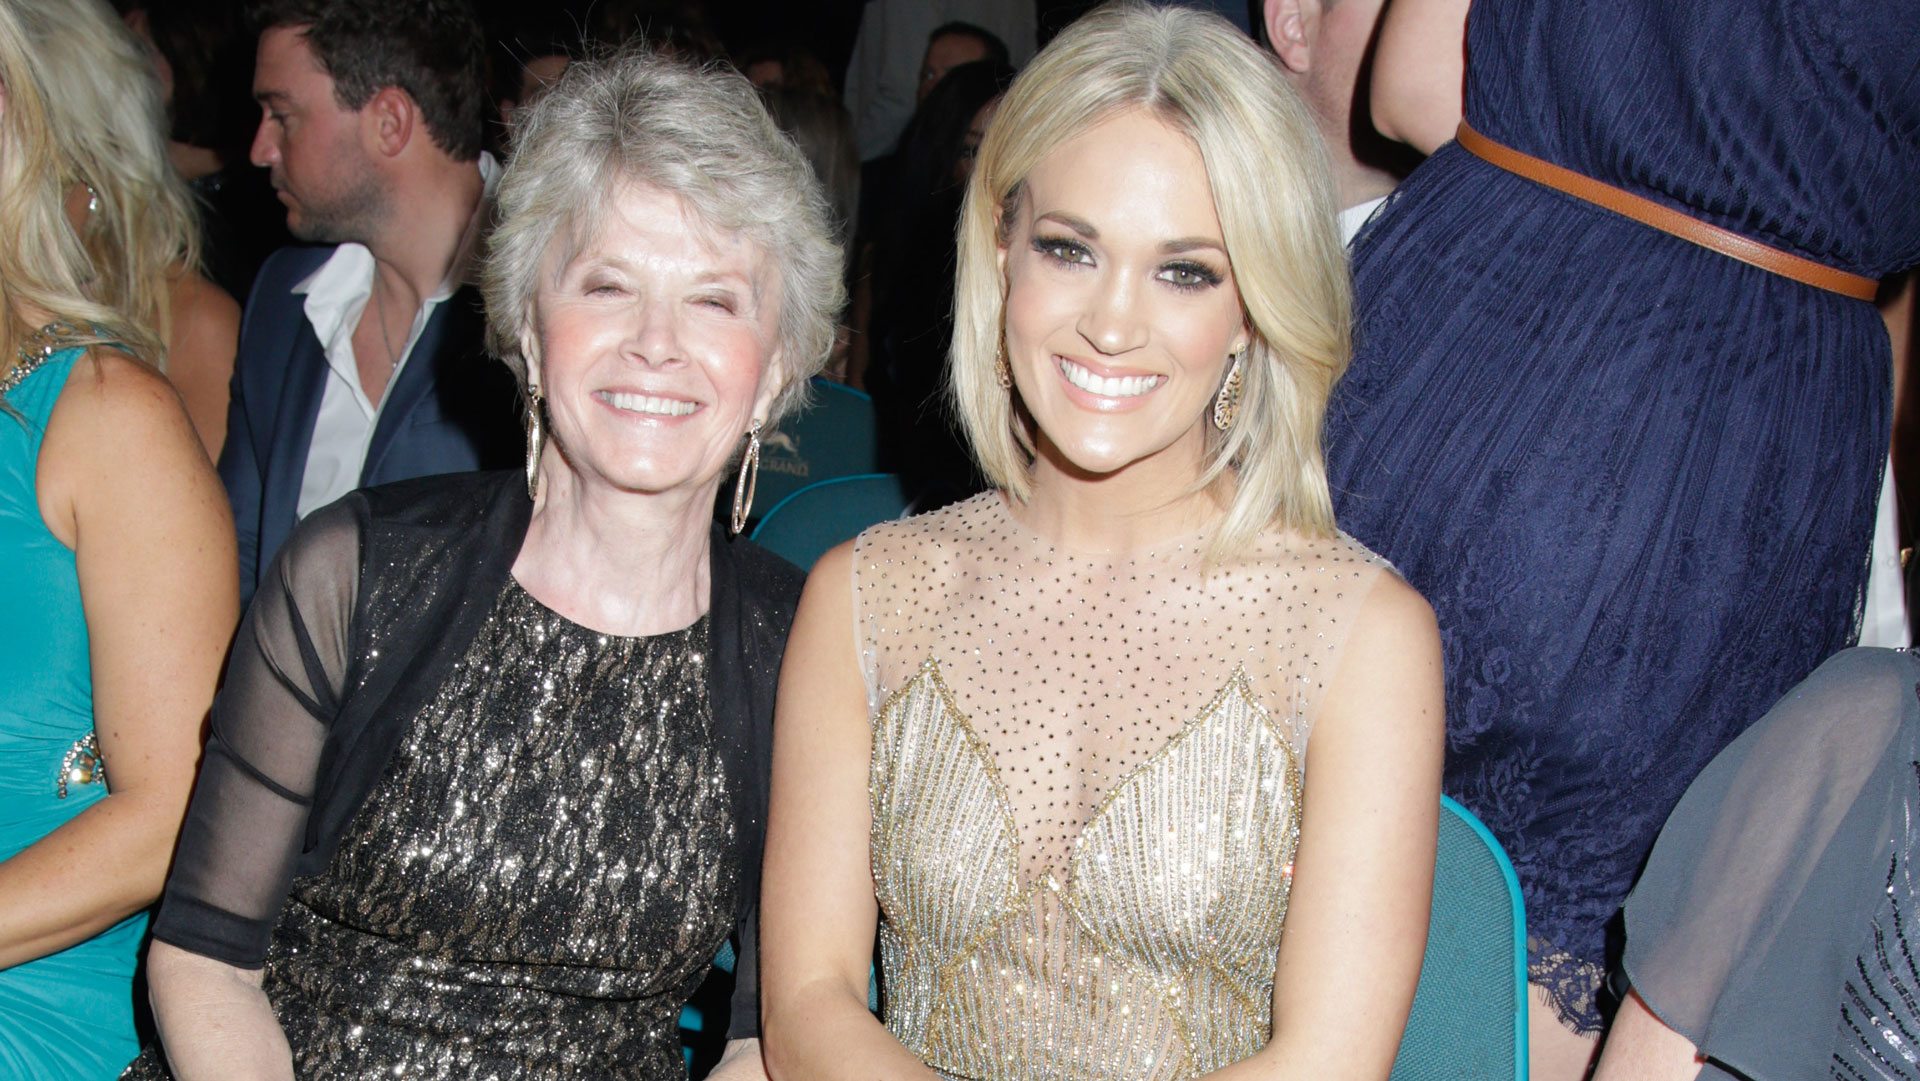 Carrie Underwood took her mom, Carole, as her guest to the 2016 ACM Awards.